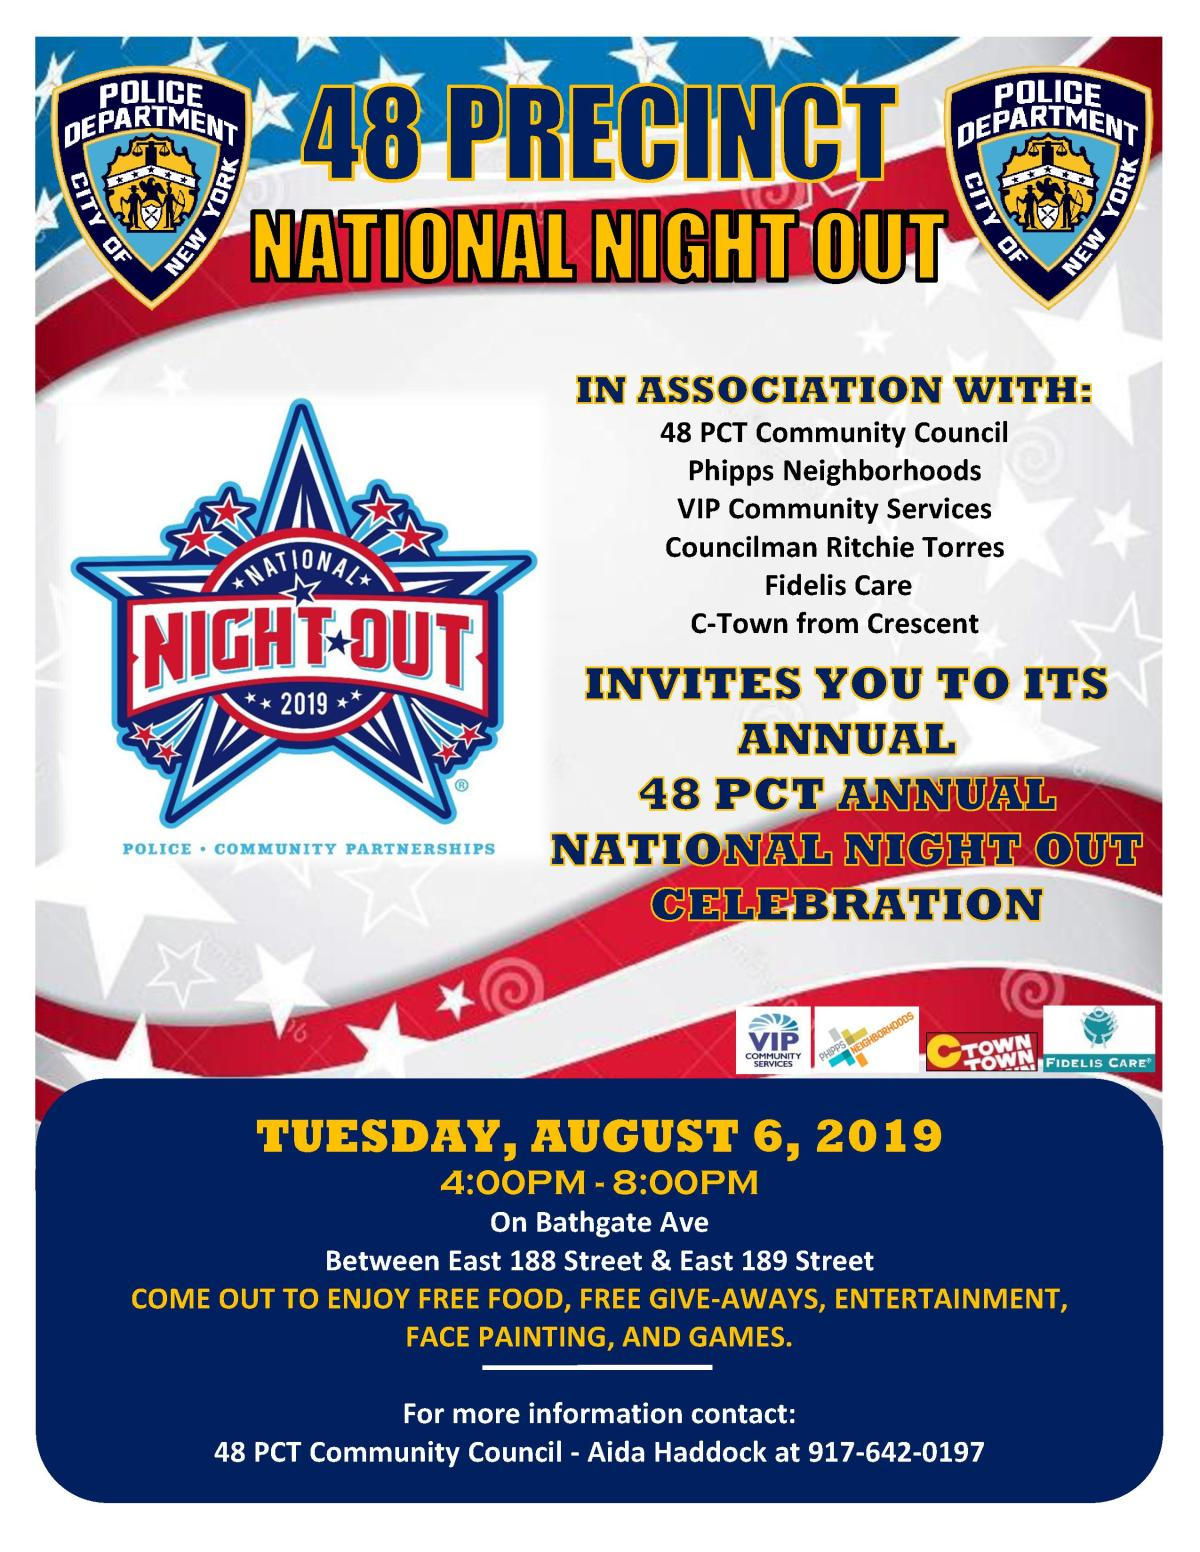 NATIONAL NIGHT OUT 2019 Flyer